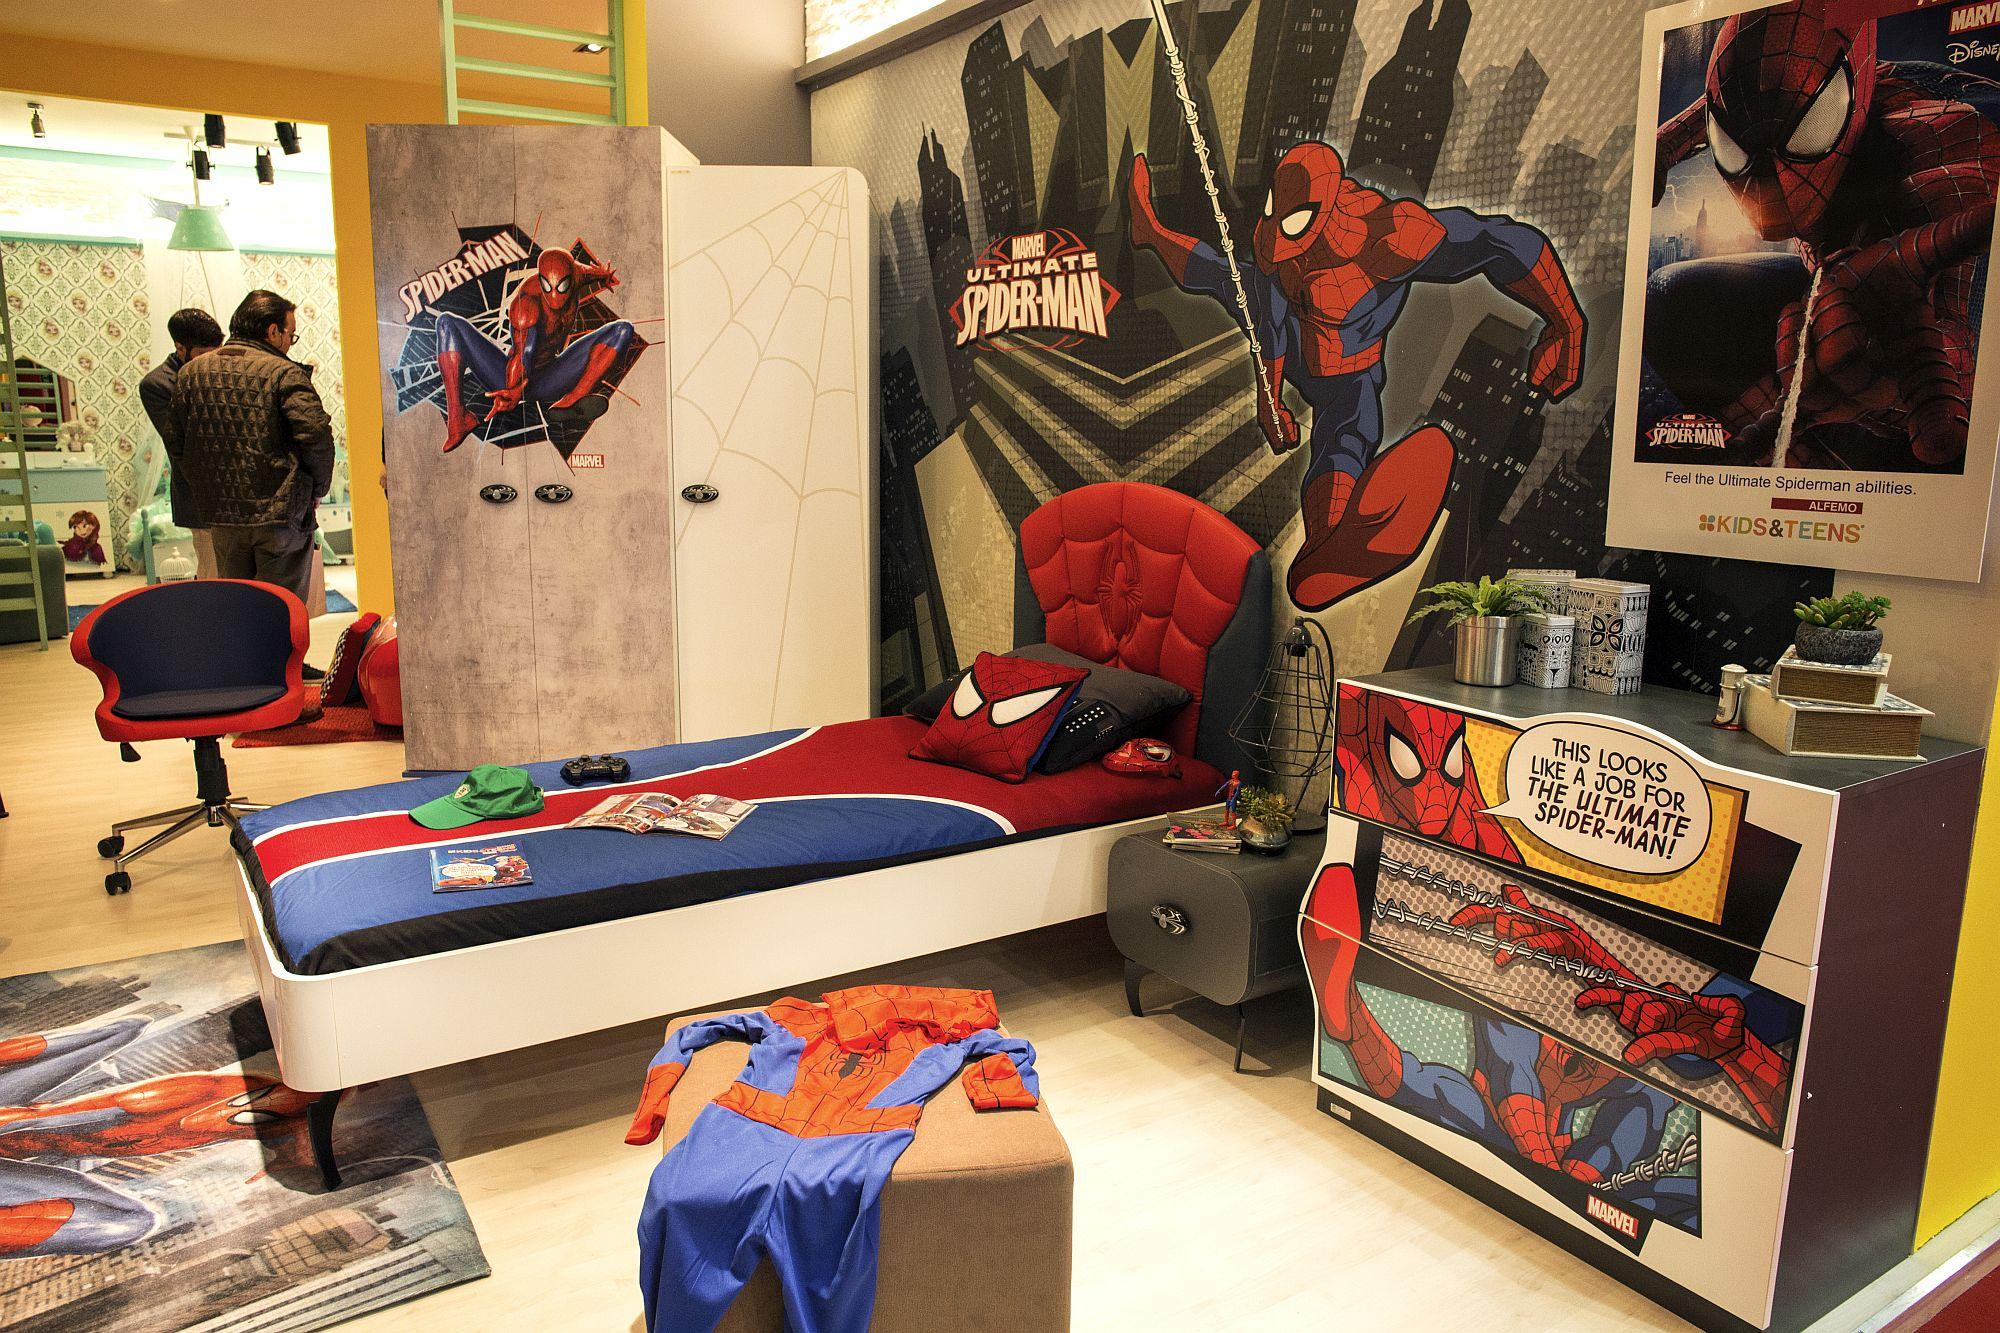 Kids Love Themed Bedroom Sets: 50 Latest Kids' Bedroom Decorating And Furniture Ideas